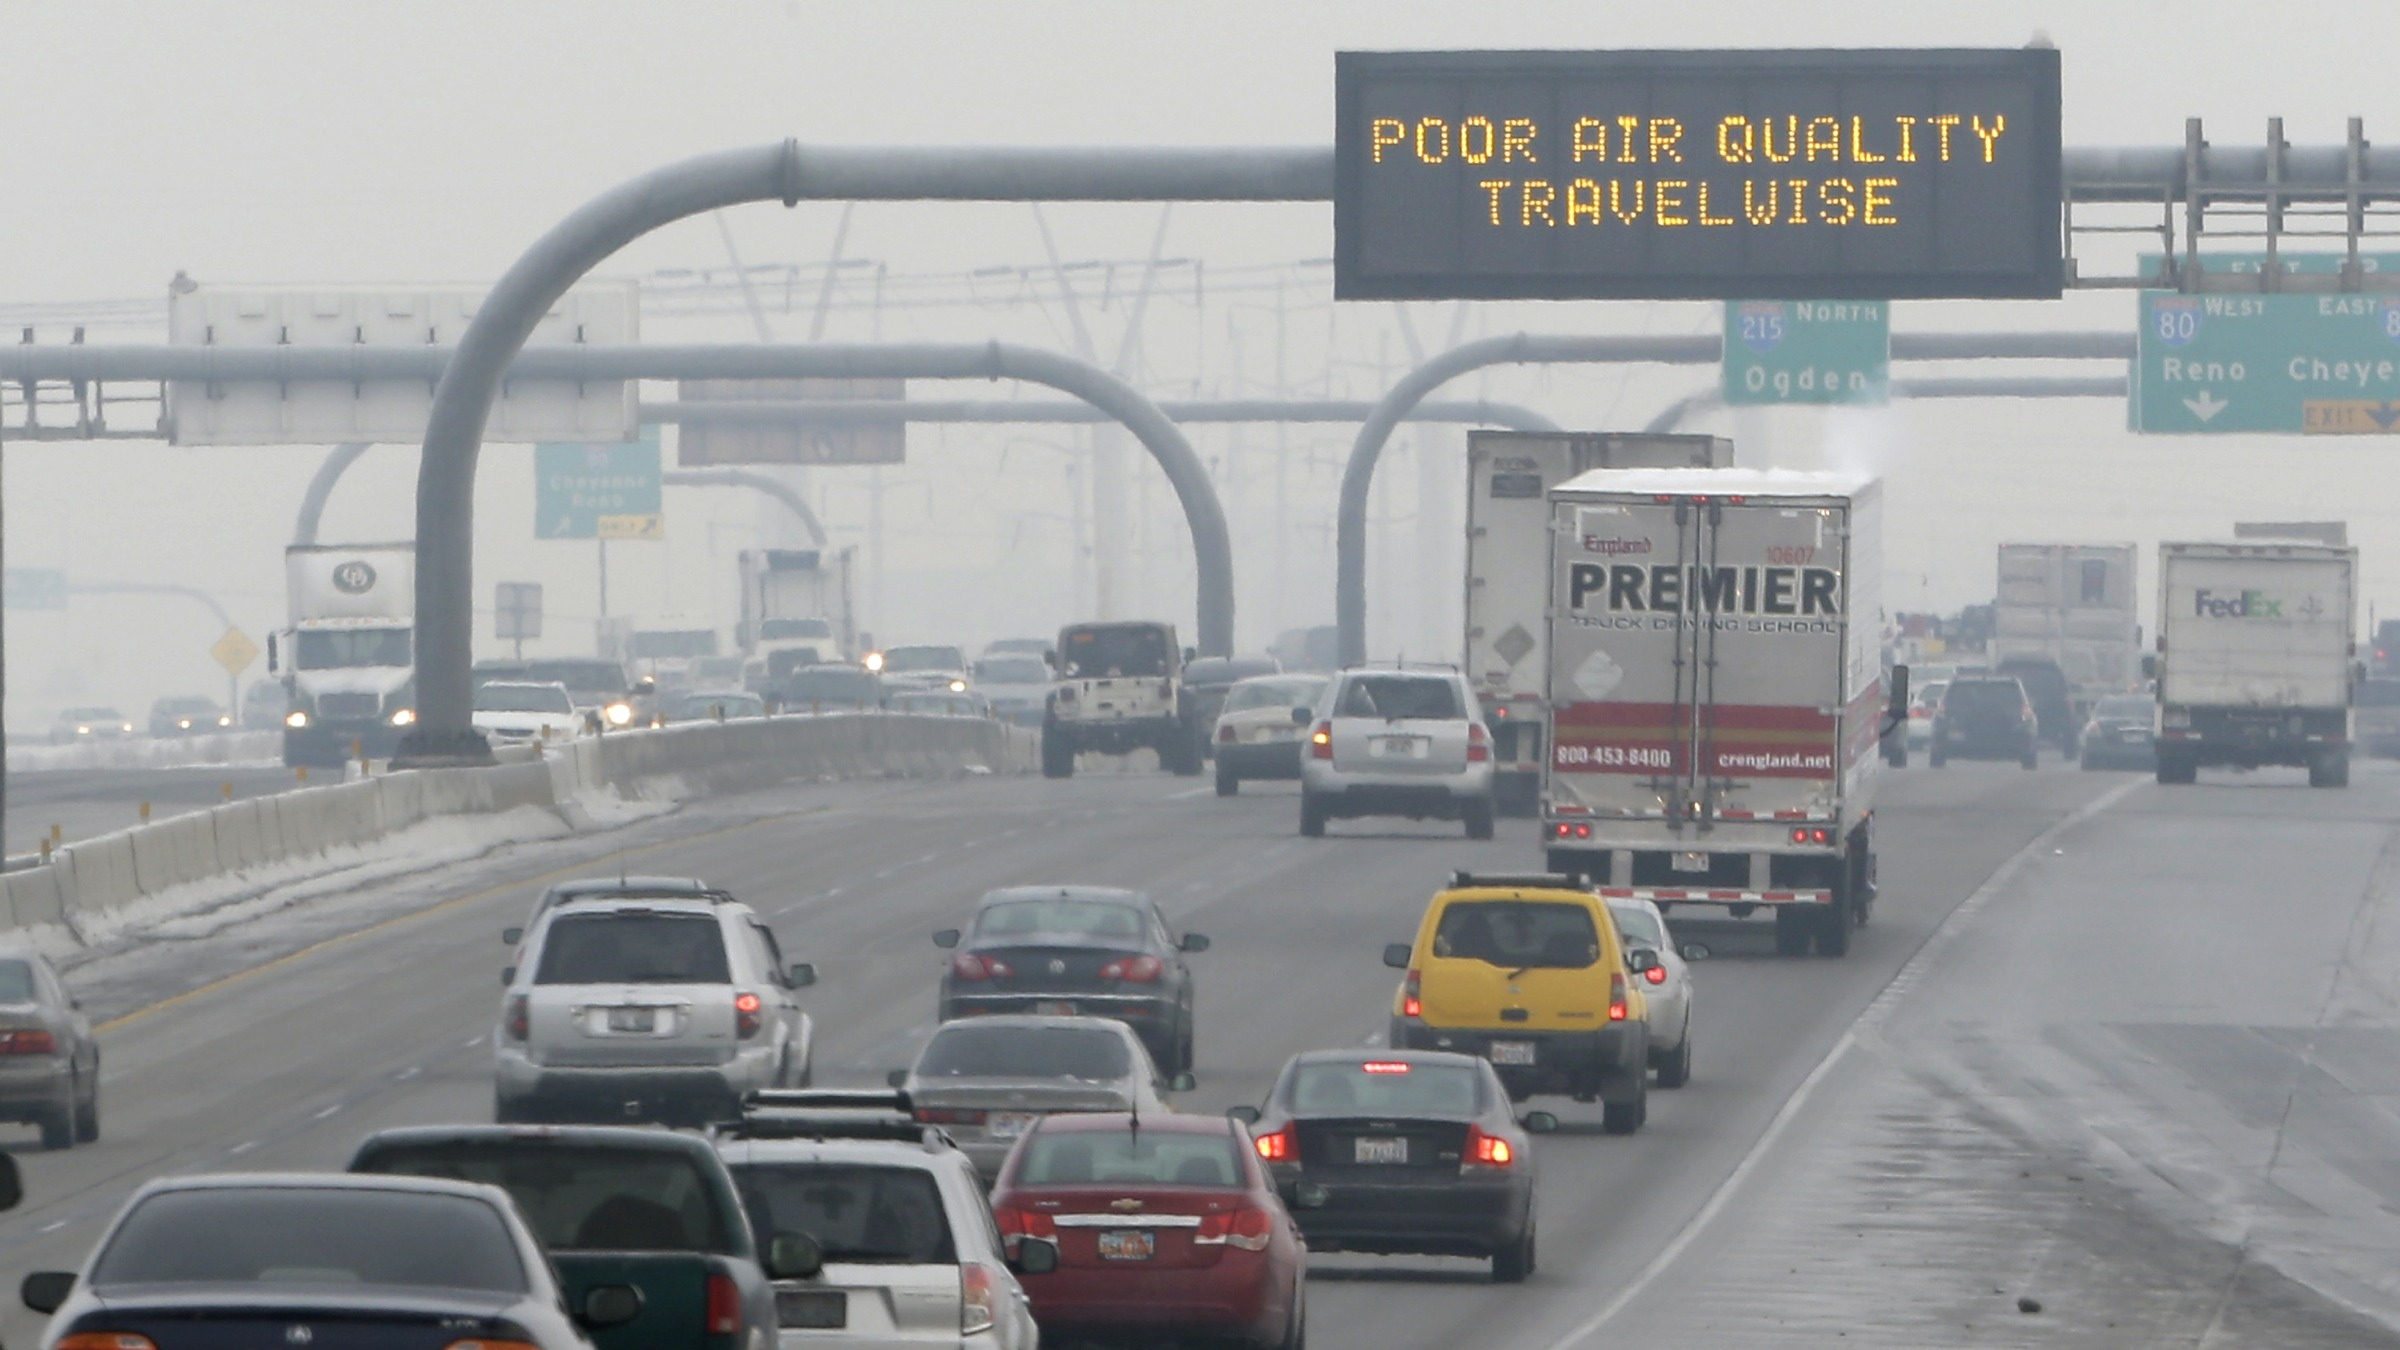 FILE - This Jan. 23, 2013, file photo, shows a poor air quality sign is posted over a highway, in Salt Lake City.  A watchdog group believes regulators could lean more heavily on industry to cut emissions in urban areas of northern Utah. The Healthy Environment Alliance of Utah is scrutinizing a plan to fight air pollution that regulators are shopping for public comment. The plan requires wider use of off-the-shelf technology to control industrial emissions, but stops at requiring the most advanced controls.  (AP Photo/Rick Bowmer, File)